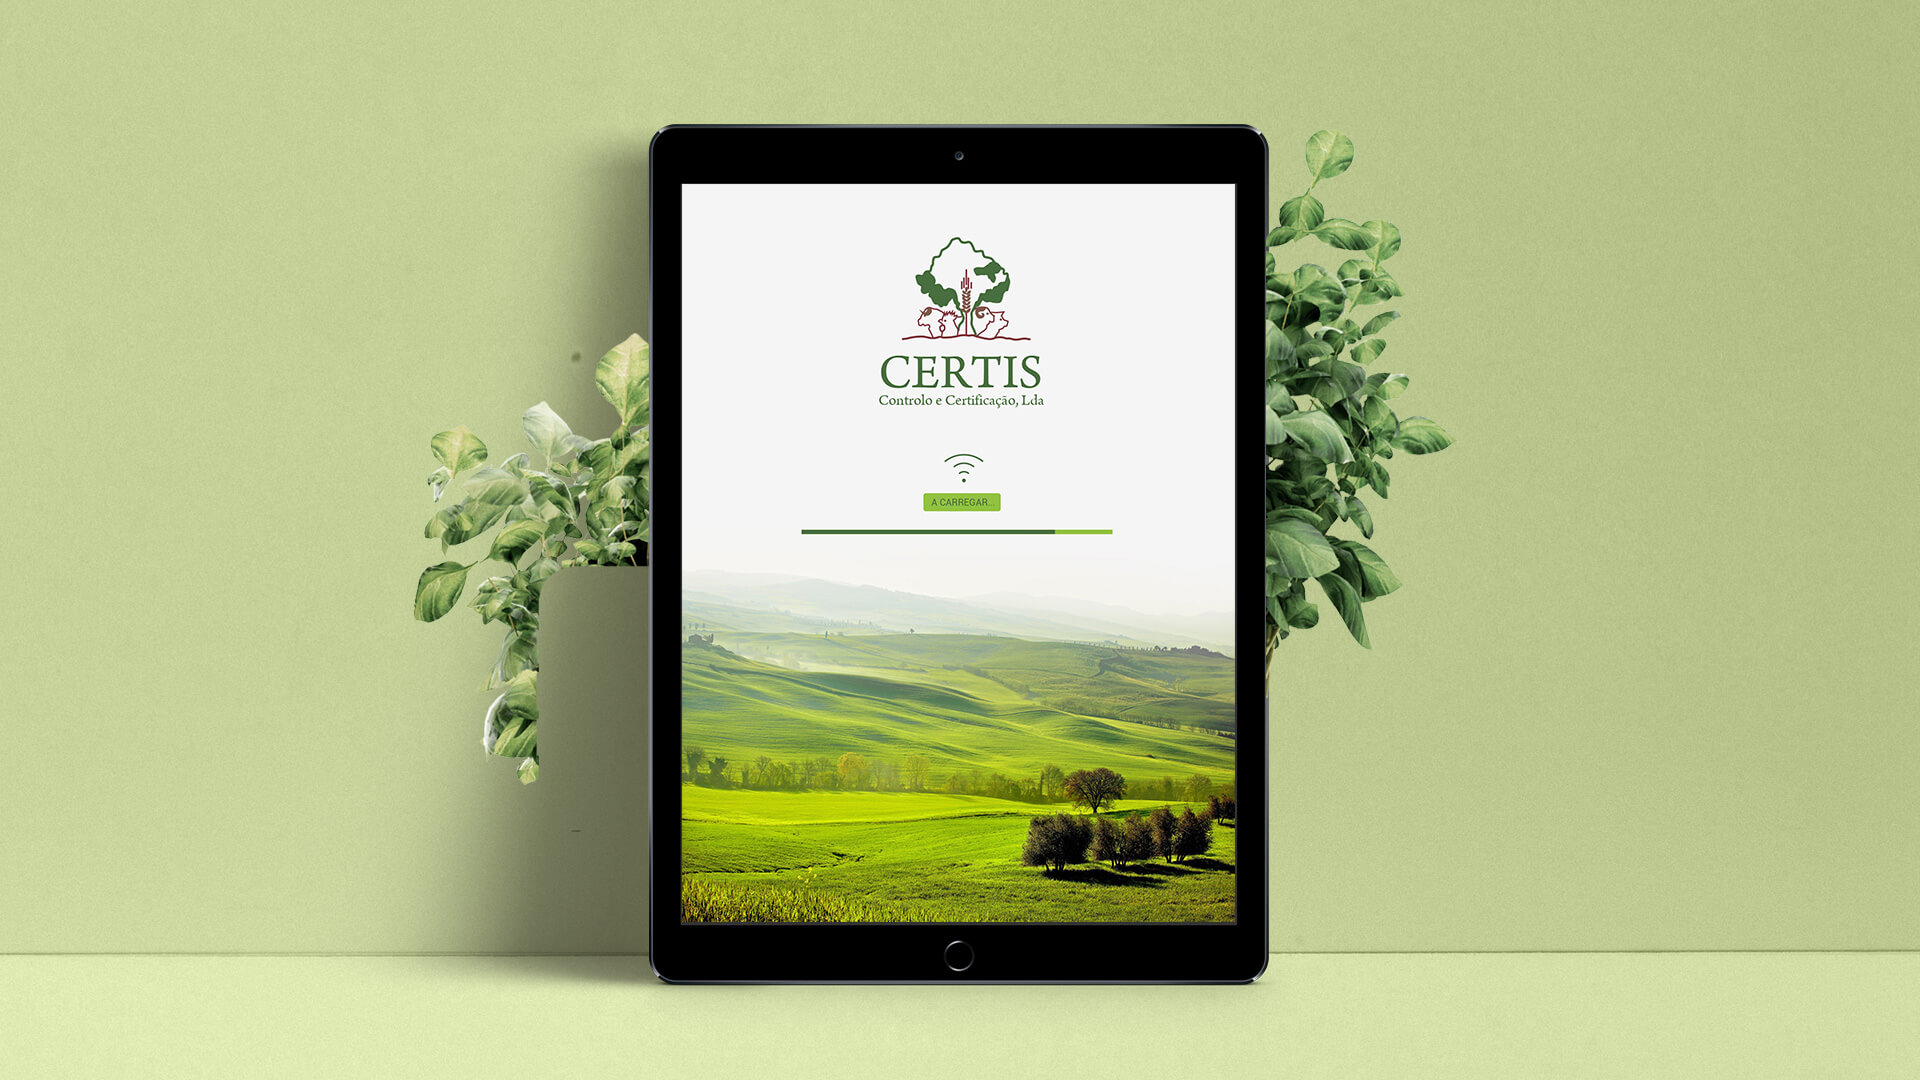 App Tablet Certis